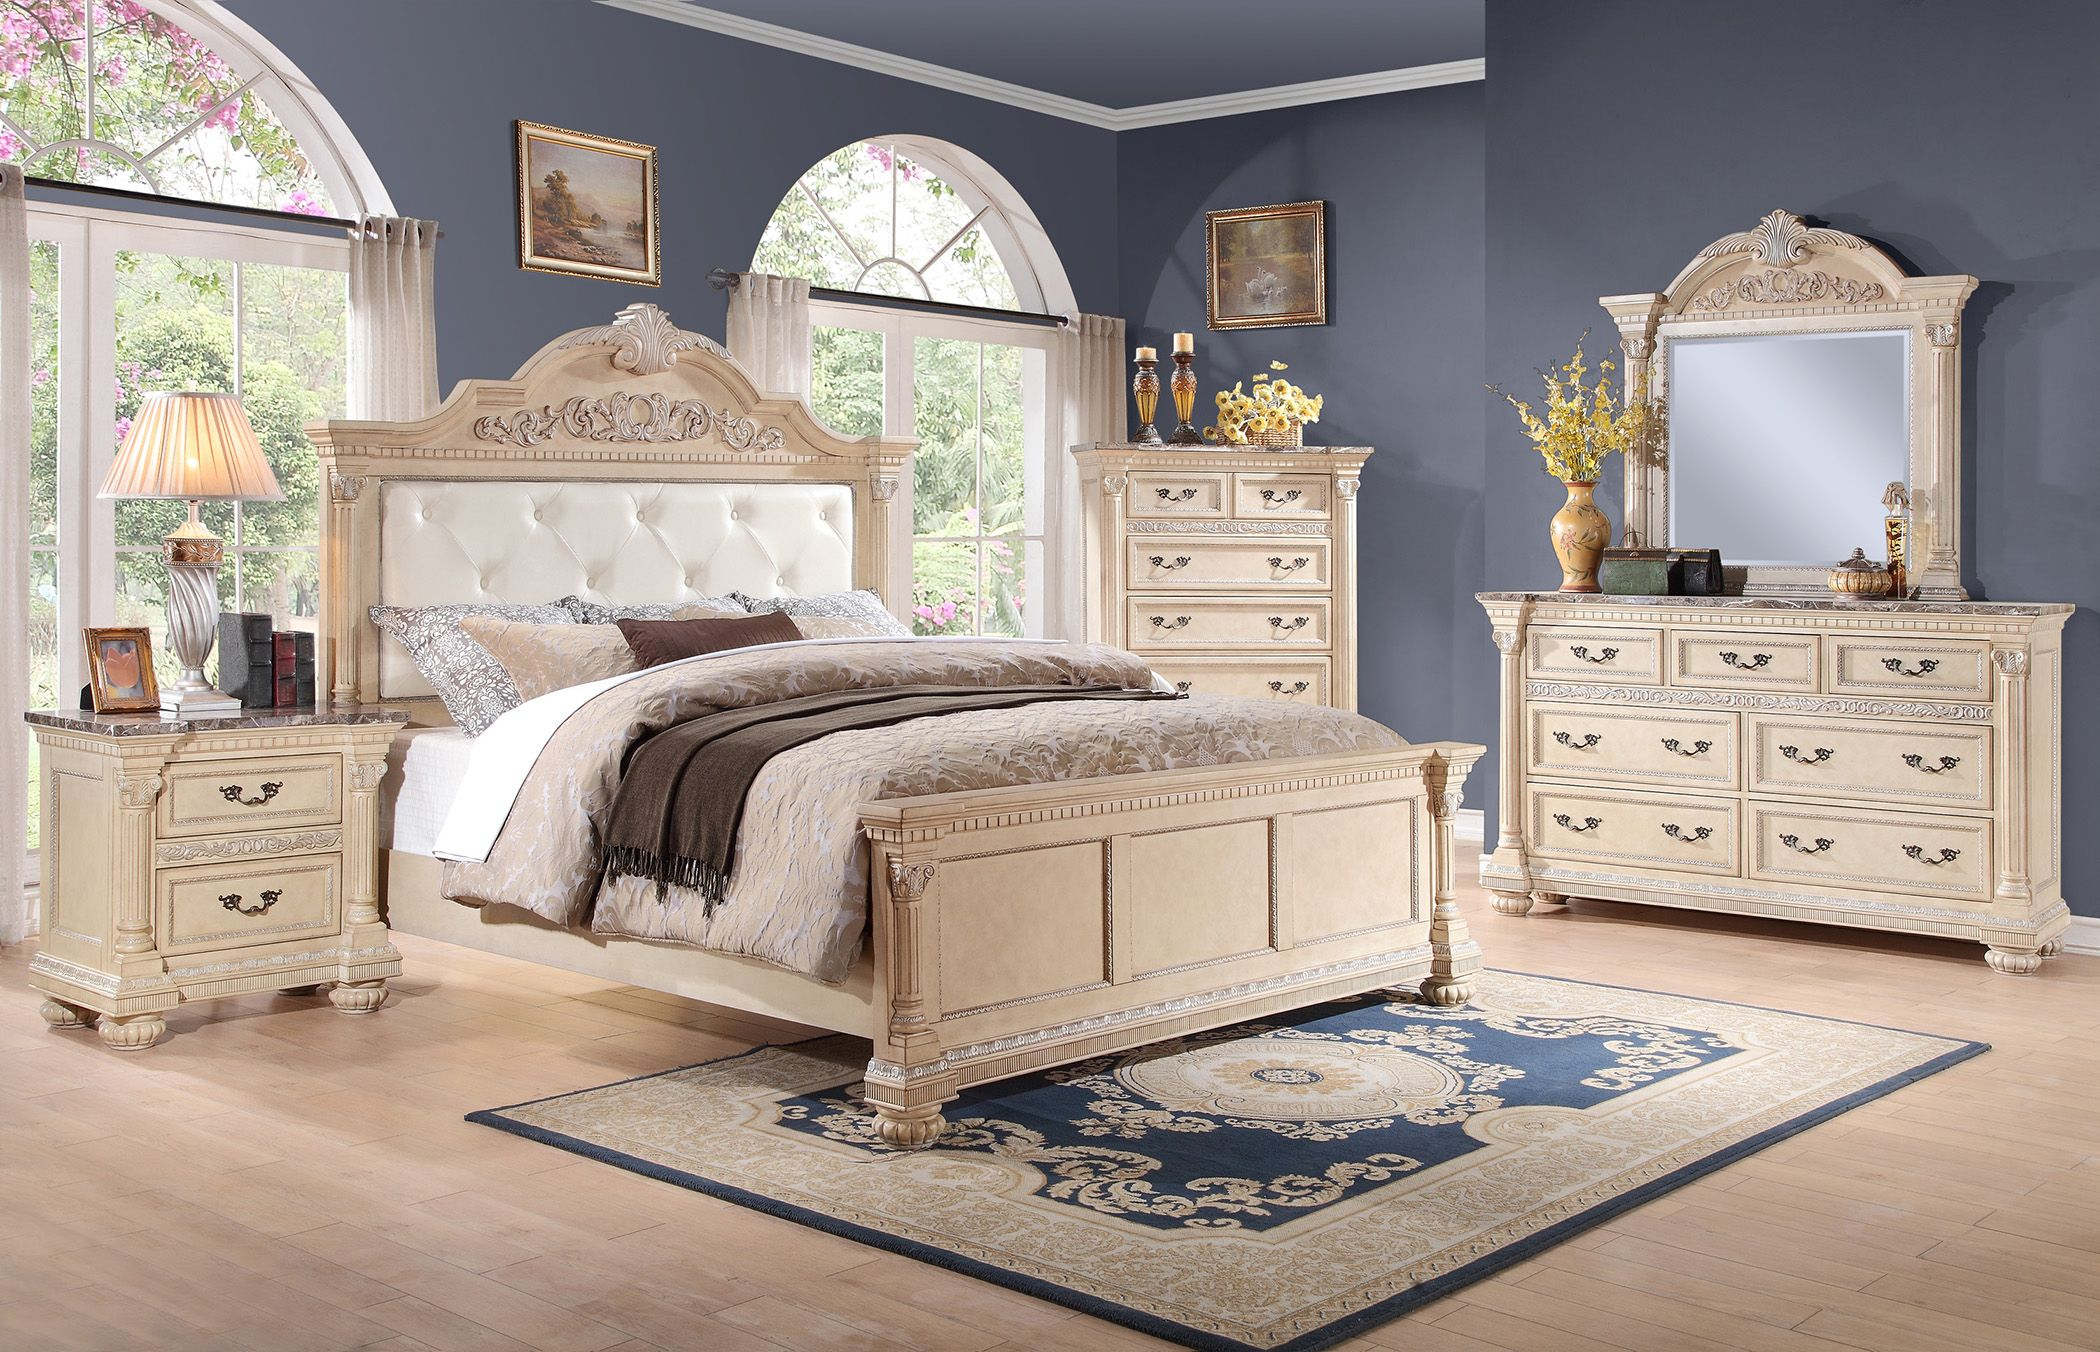 Gentil Homelegance Russian Hill 4 Pc Bedroom Set In Antique Whitewash Finish   USA  Warehouse Furniture